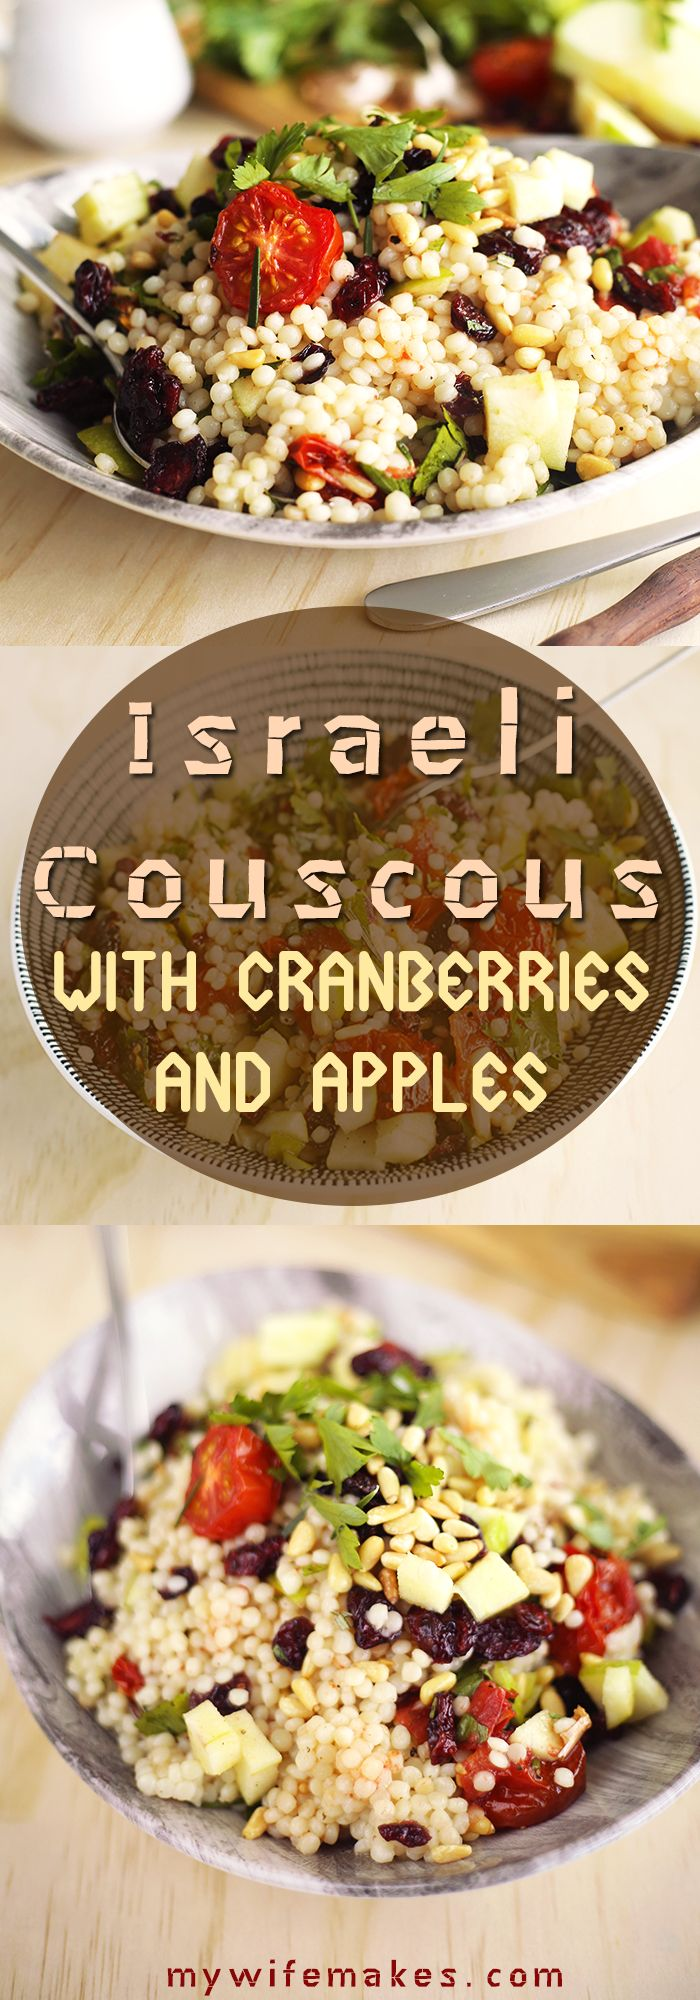 Delicious Israeli Couscous with Apples, Cranberries, Pine Nuts, Herbs and Roasted Tomatoes.